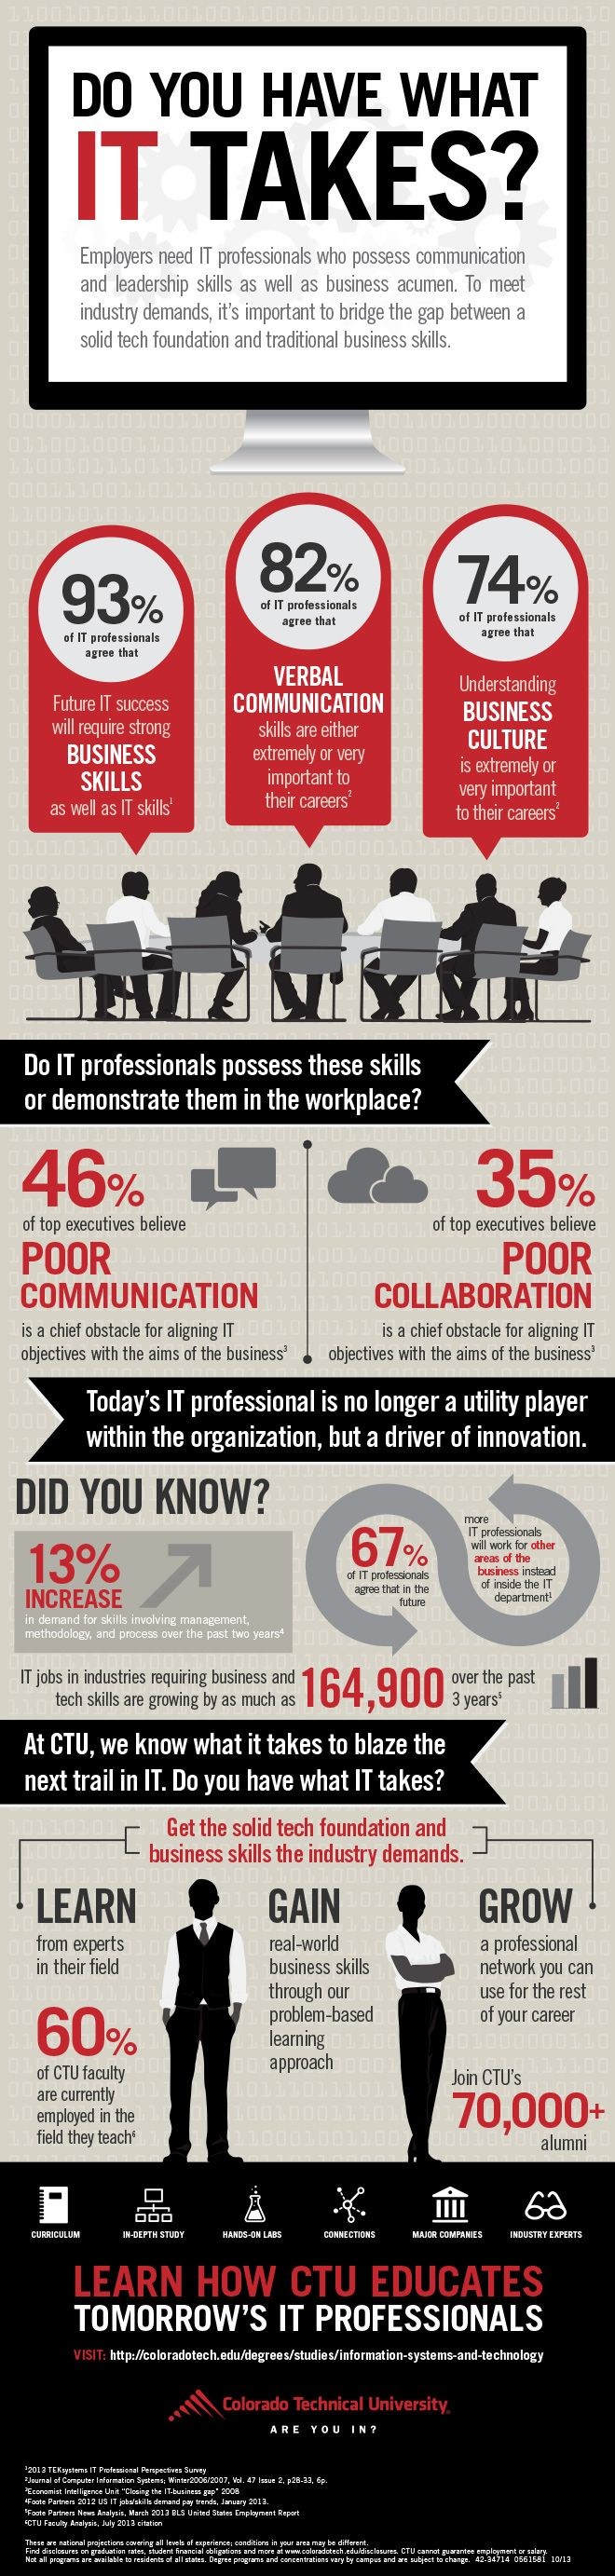 Do You Have What A Career In Information Technology Takes Colorado Technical University Infographic Information Technology Computer Science Infographic